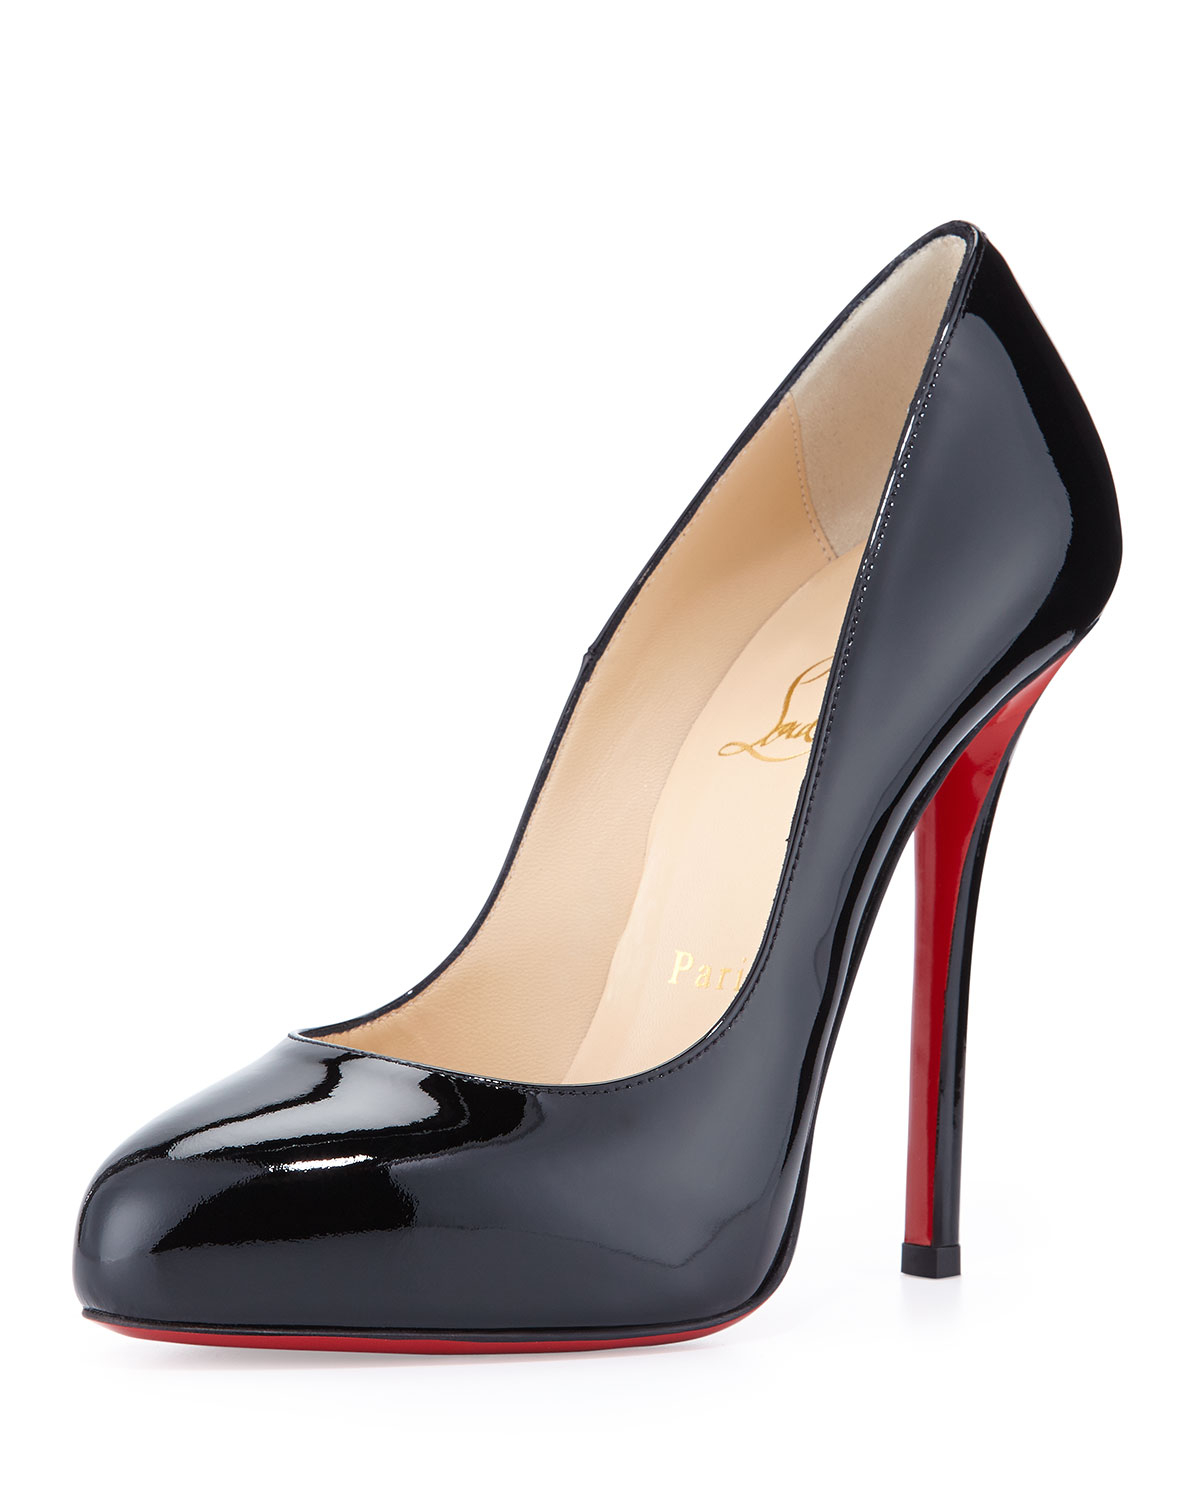 Louboutin Shoes Red Bottom Sale